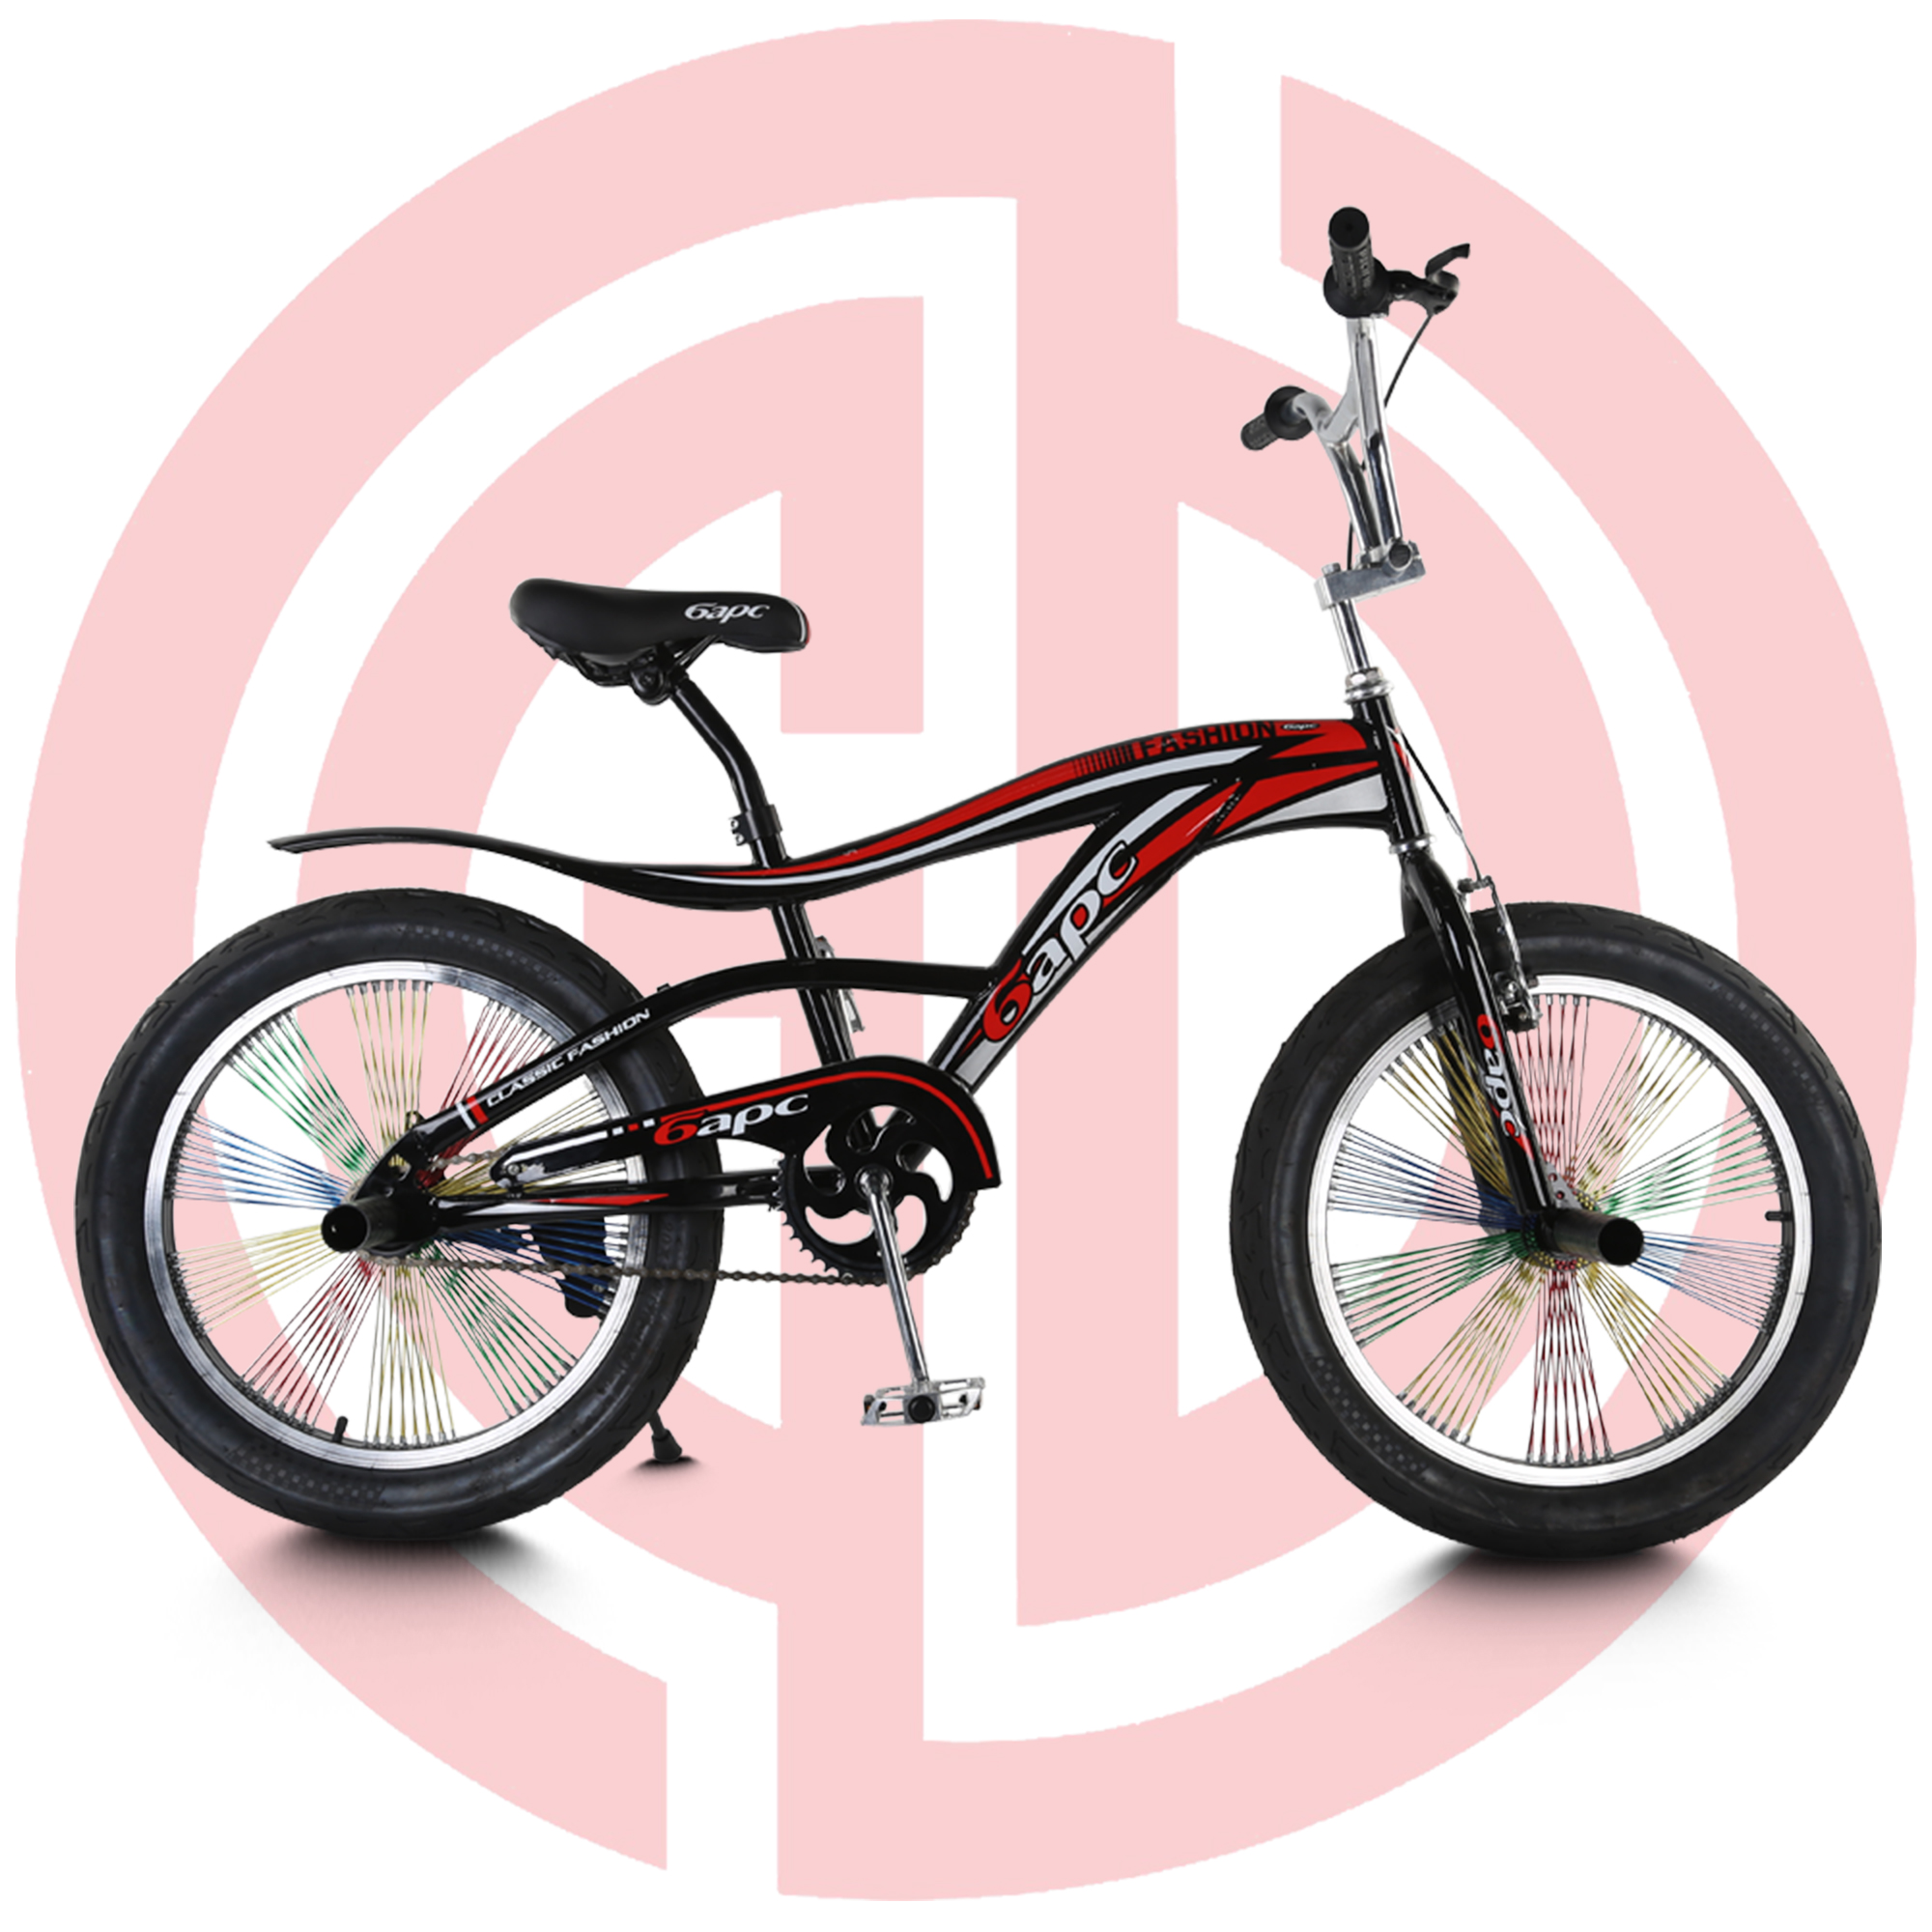 GD-KB-003: Single speed kids bicycle, boys' bike, metal frame, 20″